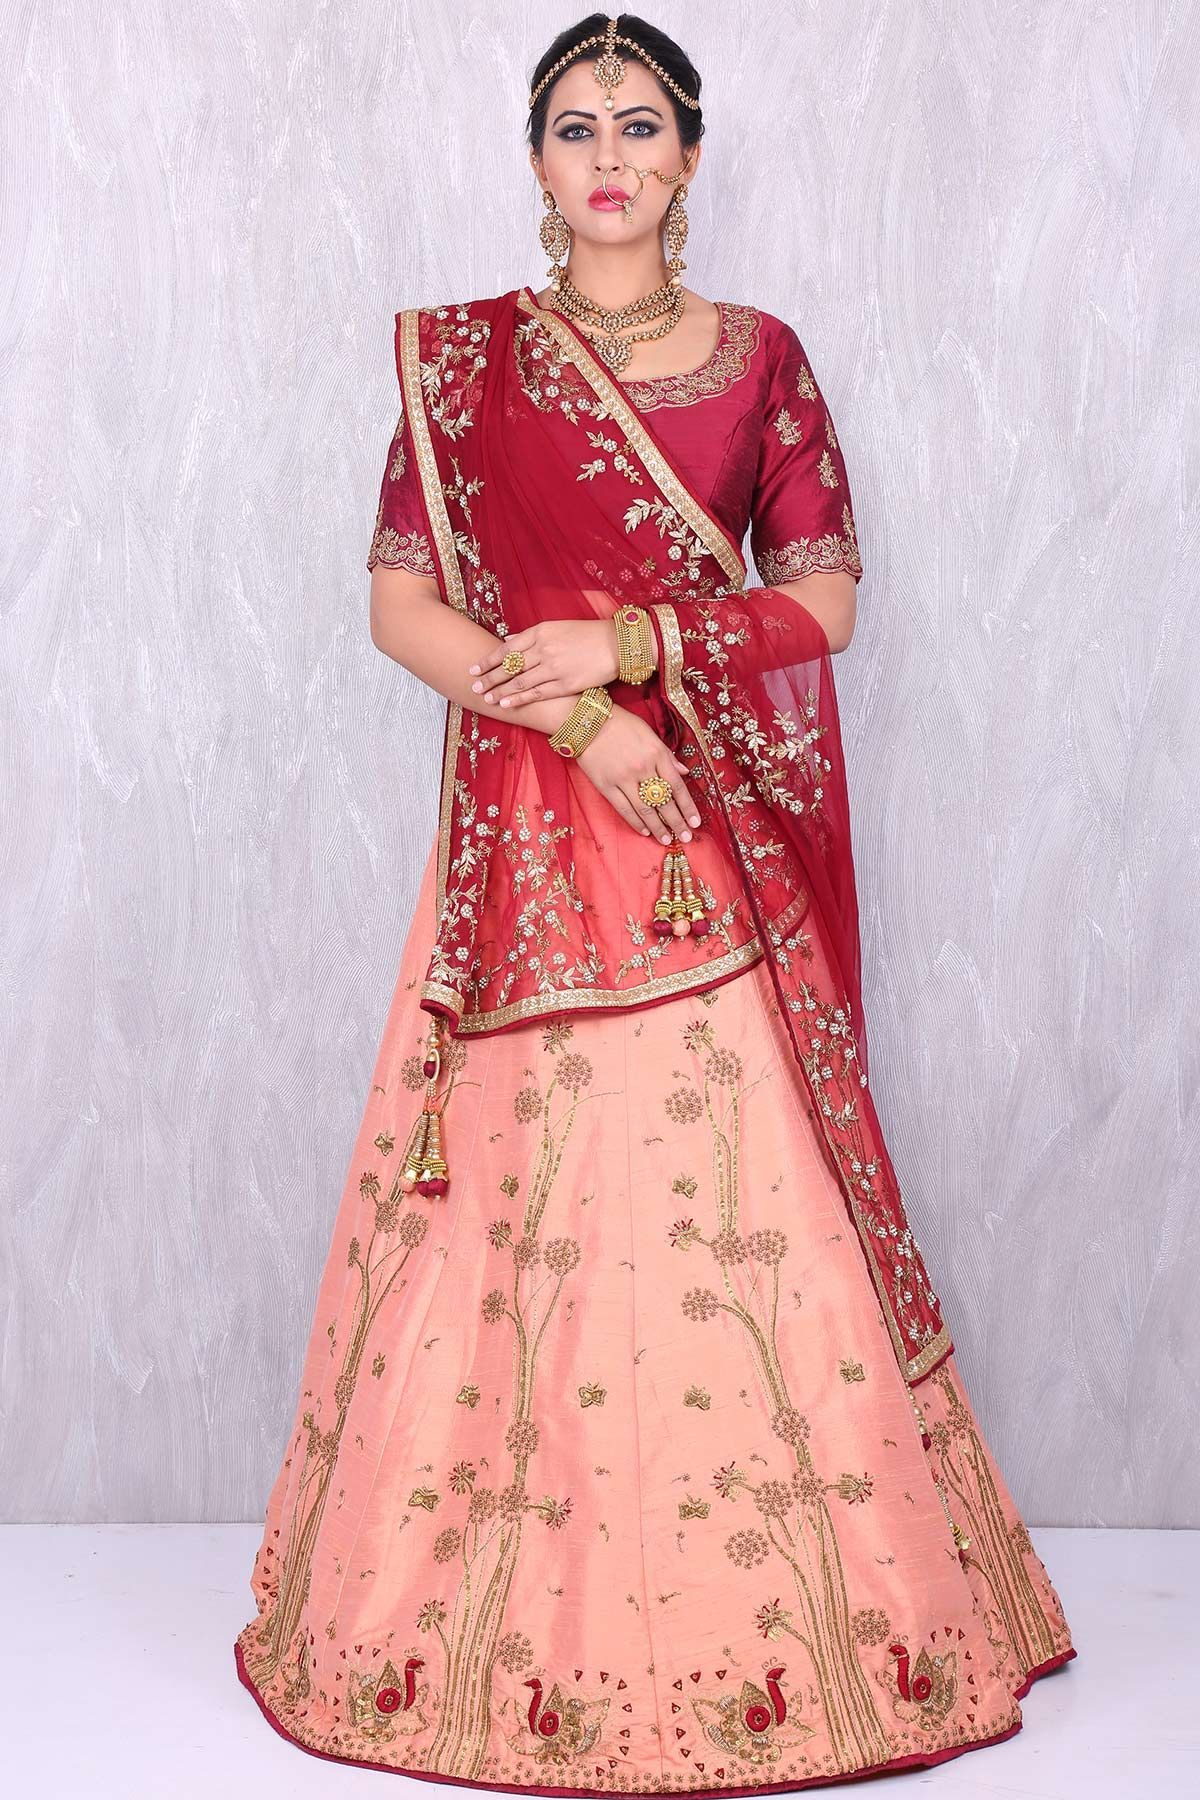 a9745ca5d1 Samyakk Maroon & dusty orange beauteous raw silk lehenga choli #Lehenga  #Maroon&Peach #Bridal #Wedding #RawSilk